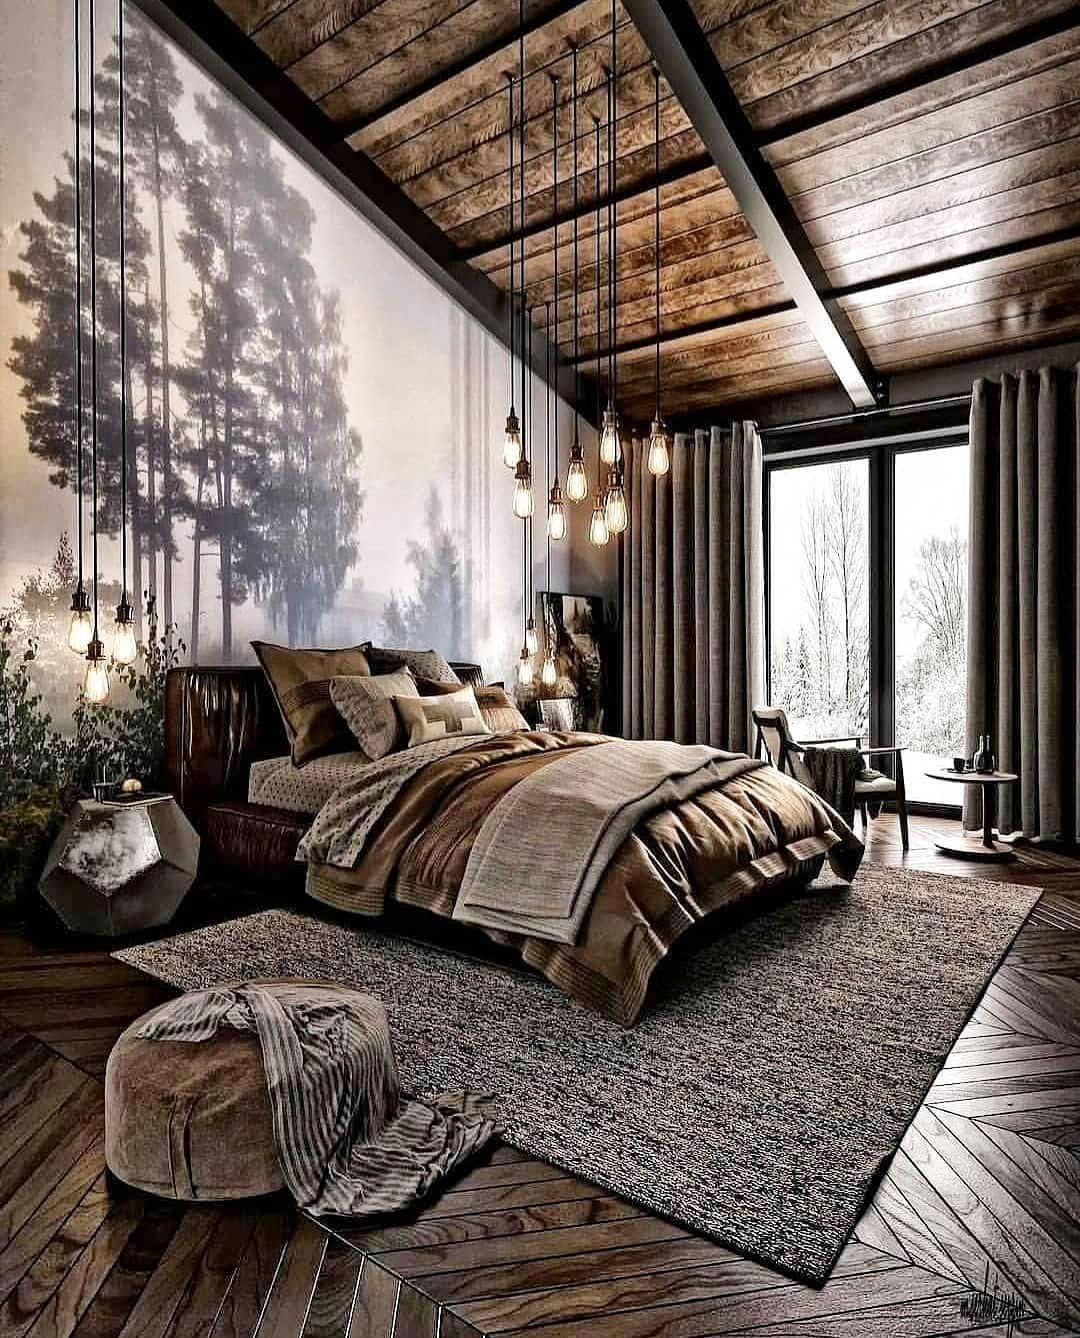 Lavish Interiors On Instagram Loft Inspired Bedroom For Cold Places What Do You Th Bedroom Design Styles Cozy Bedroom Design Modern Bedroom Design